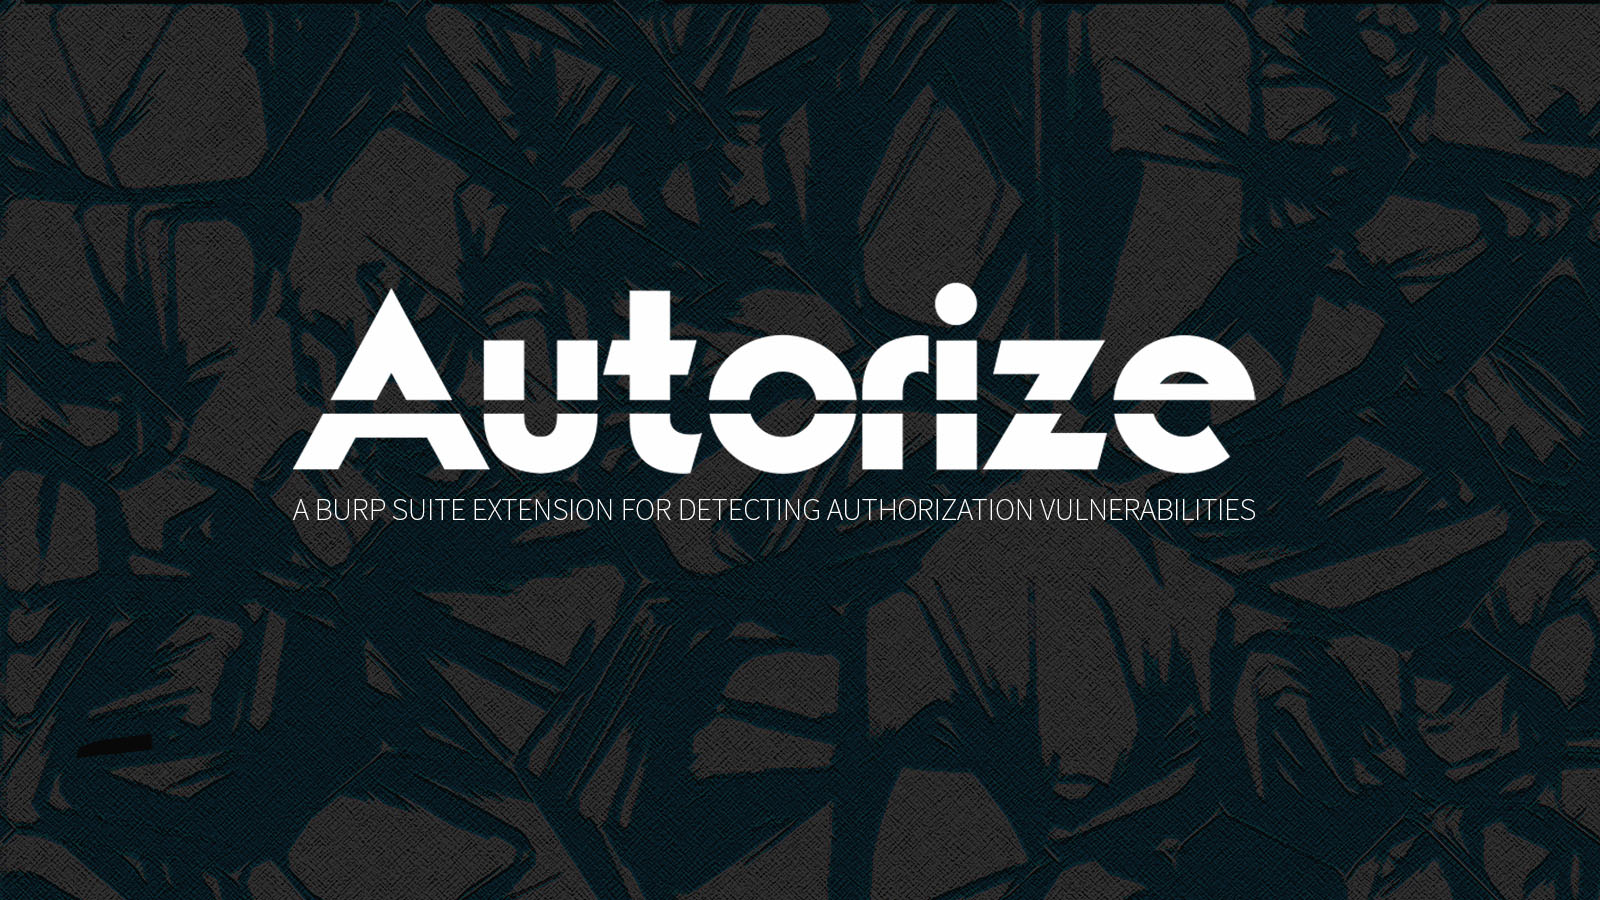 Autorize - A Burp Suite Extension For Detecting Authorization Vulnerabilities